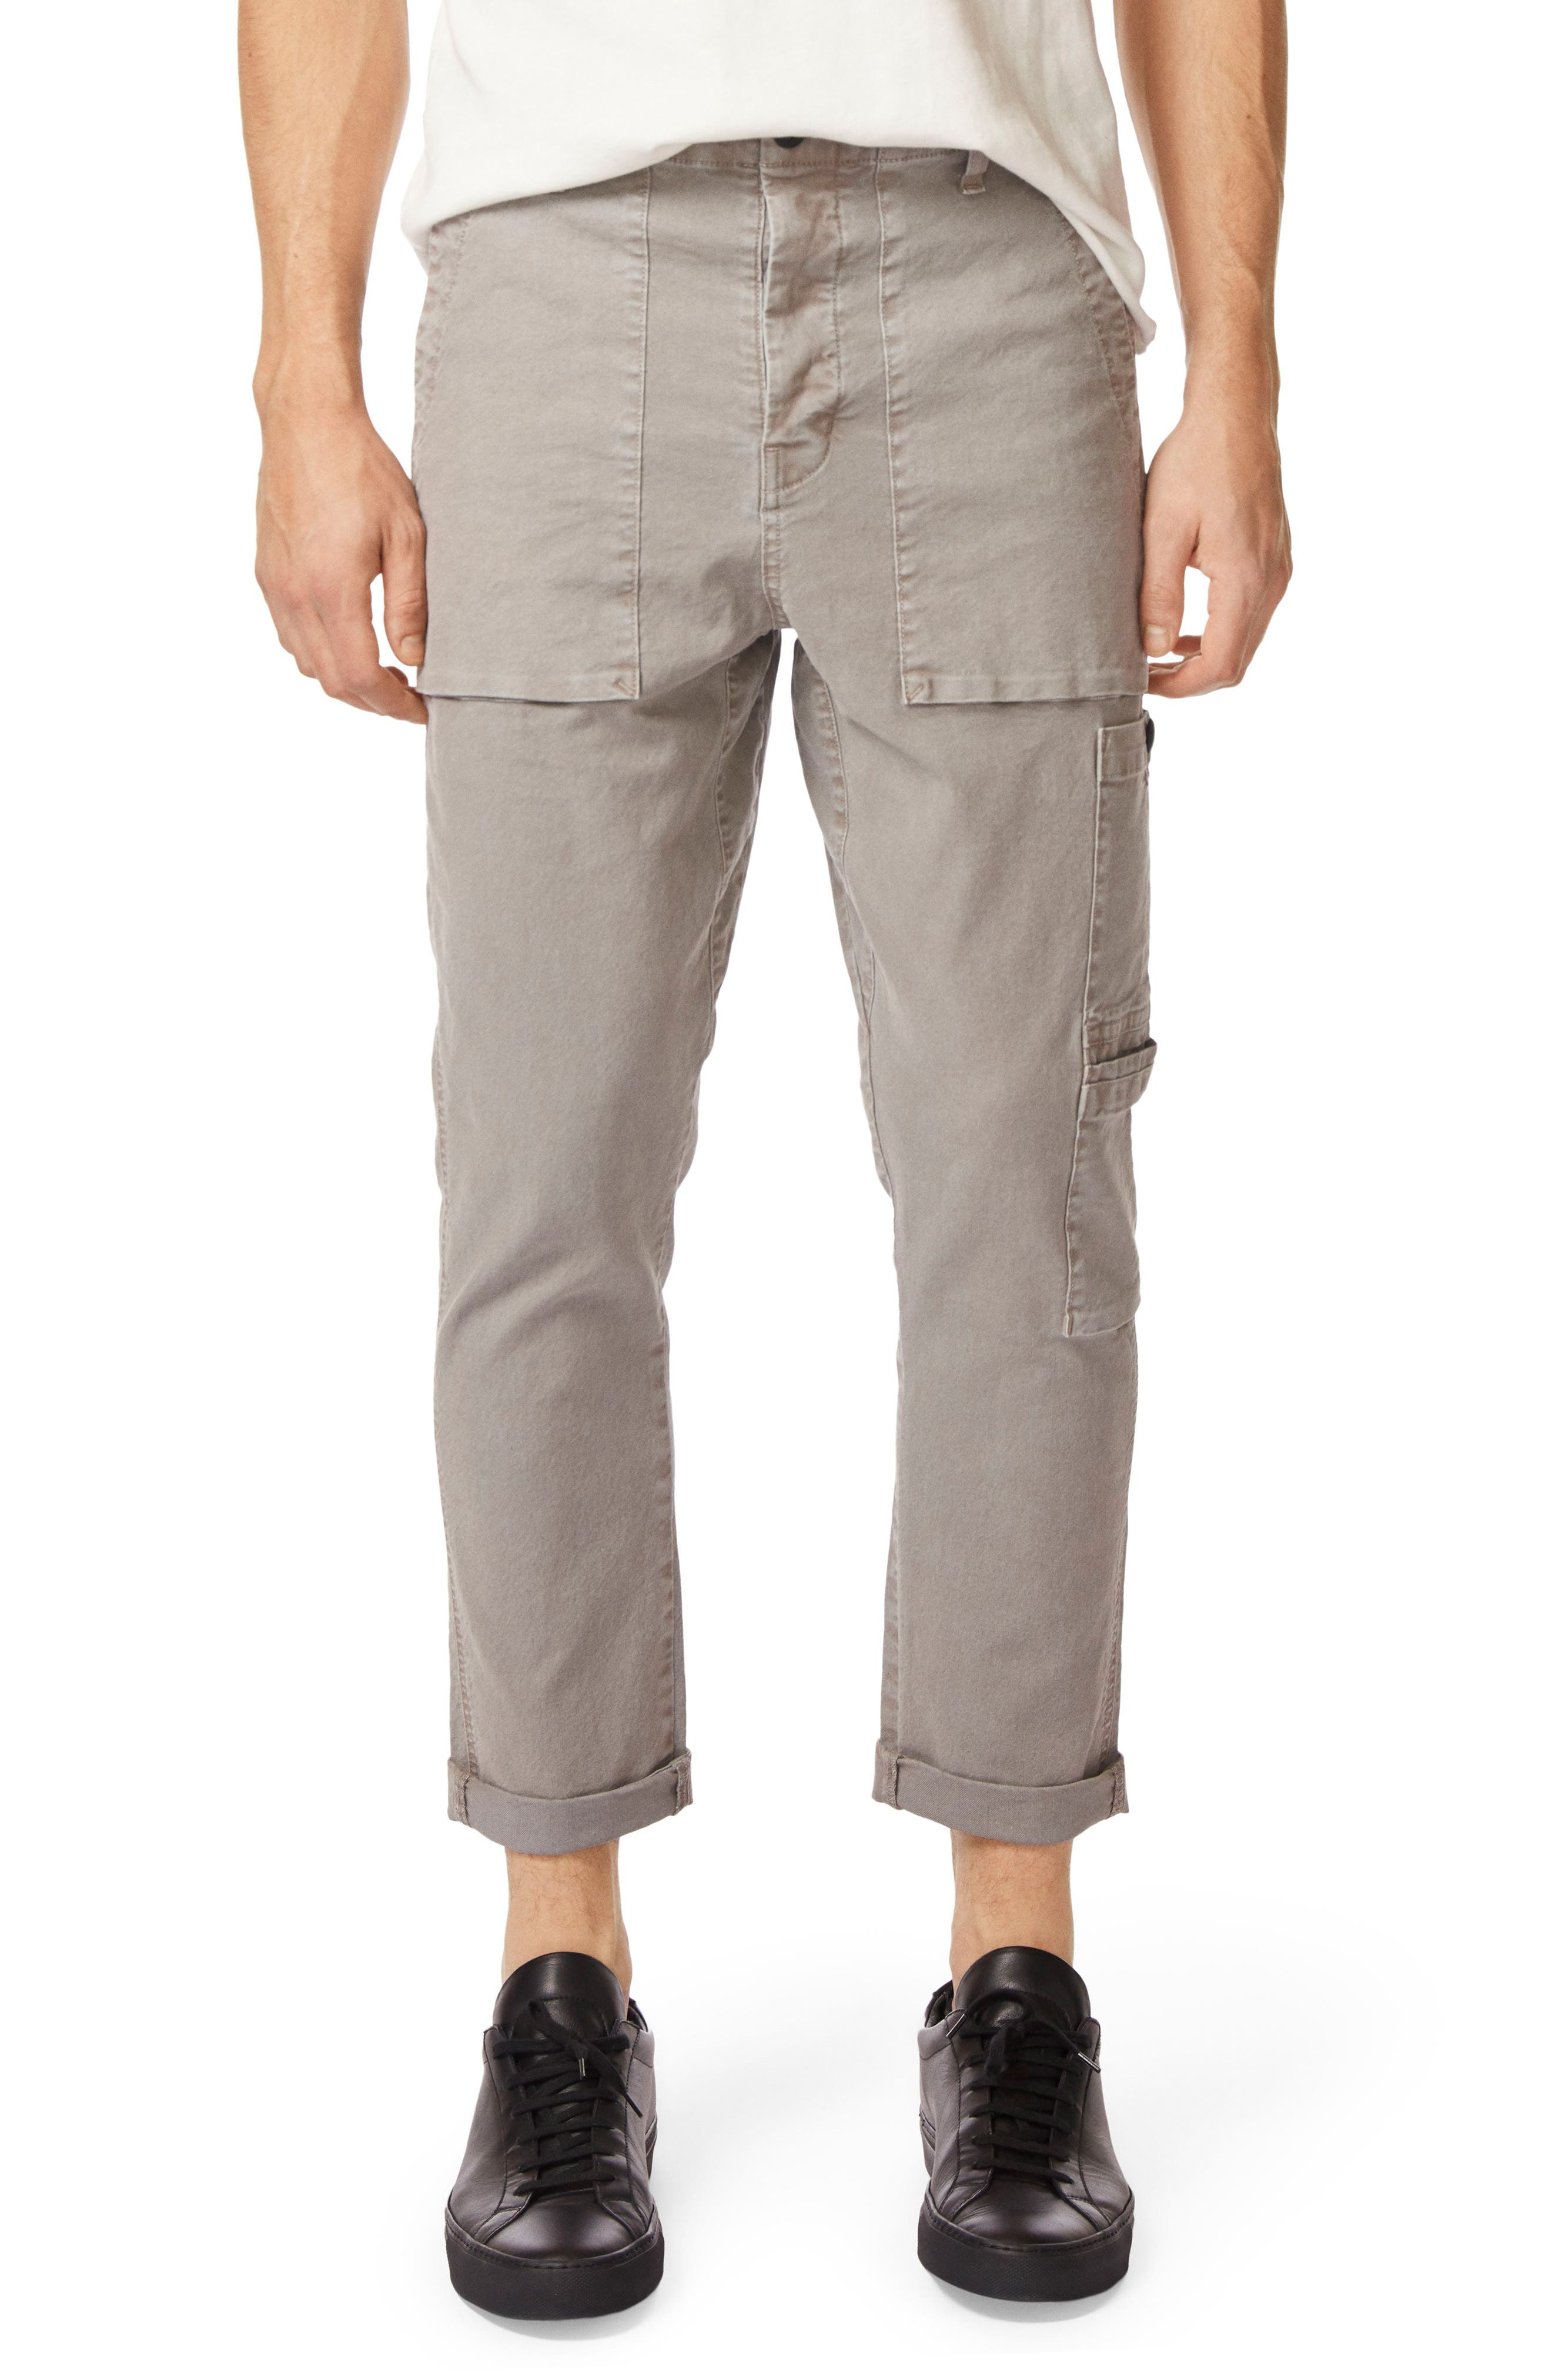 Koeficient Straight Fit Pant,                         Main,                         color, Dull Drawi